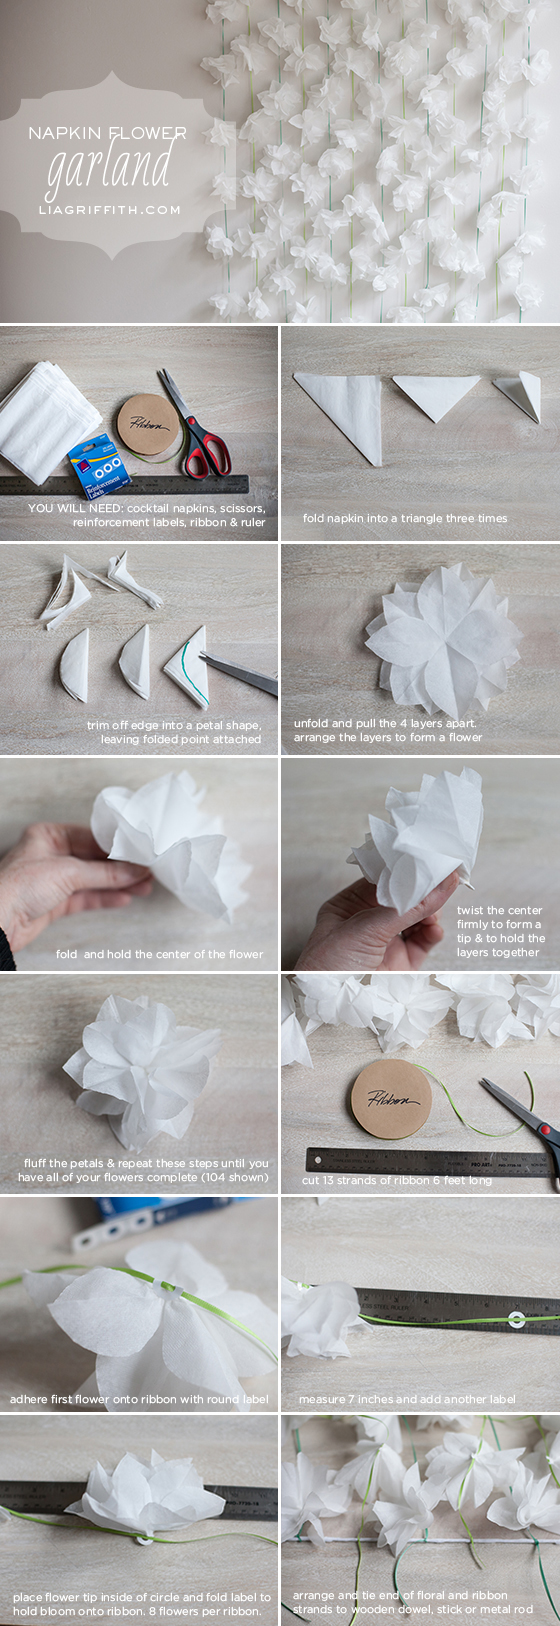 Cocktail napkin flower garland napkin flower garland napkin flower garland tutorial mightylinksfo